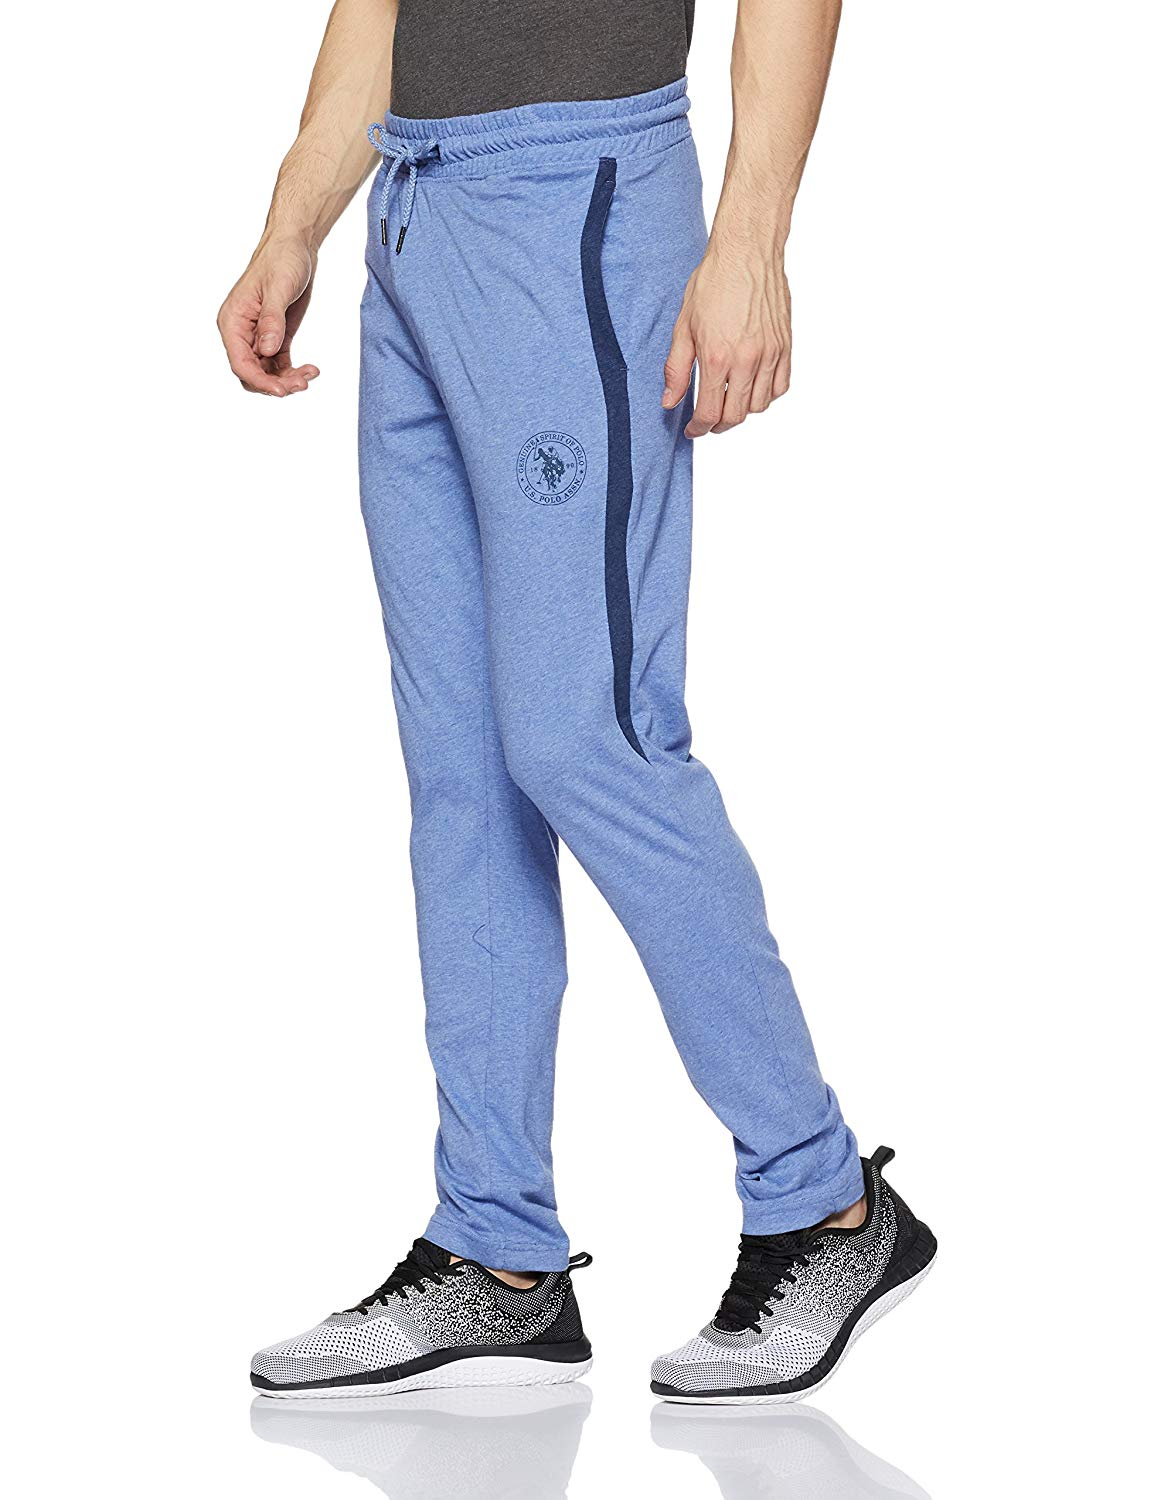 US POLO ASSN Men's Track Pant (L,Blue Melange)